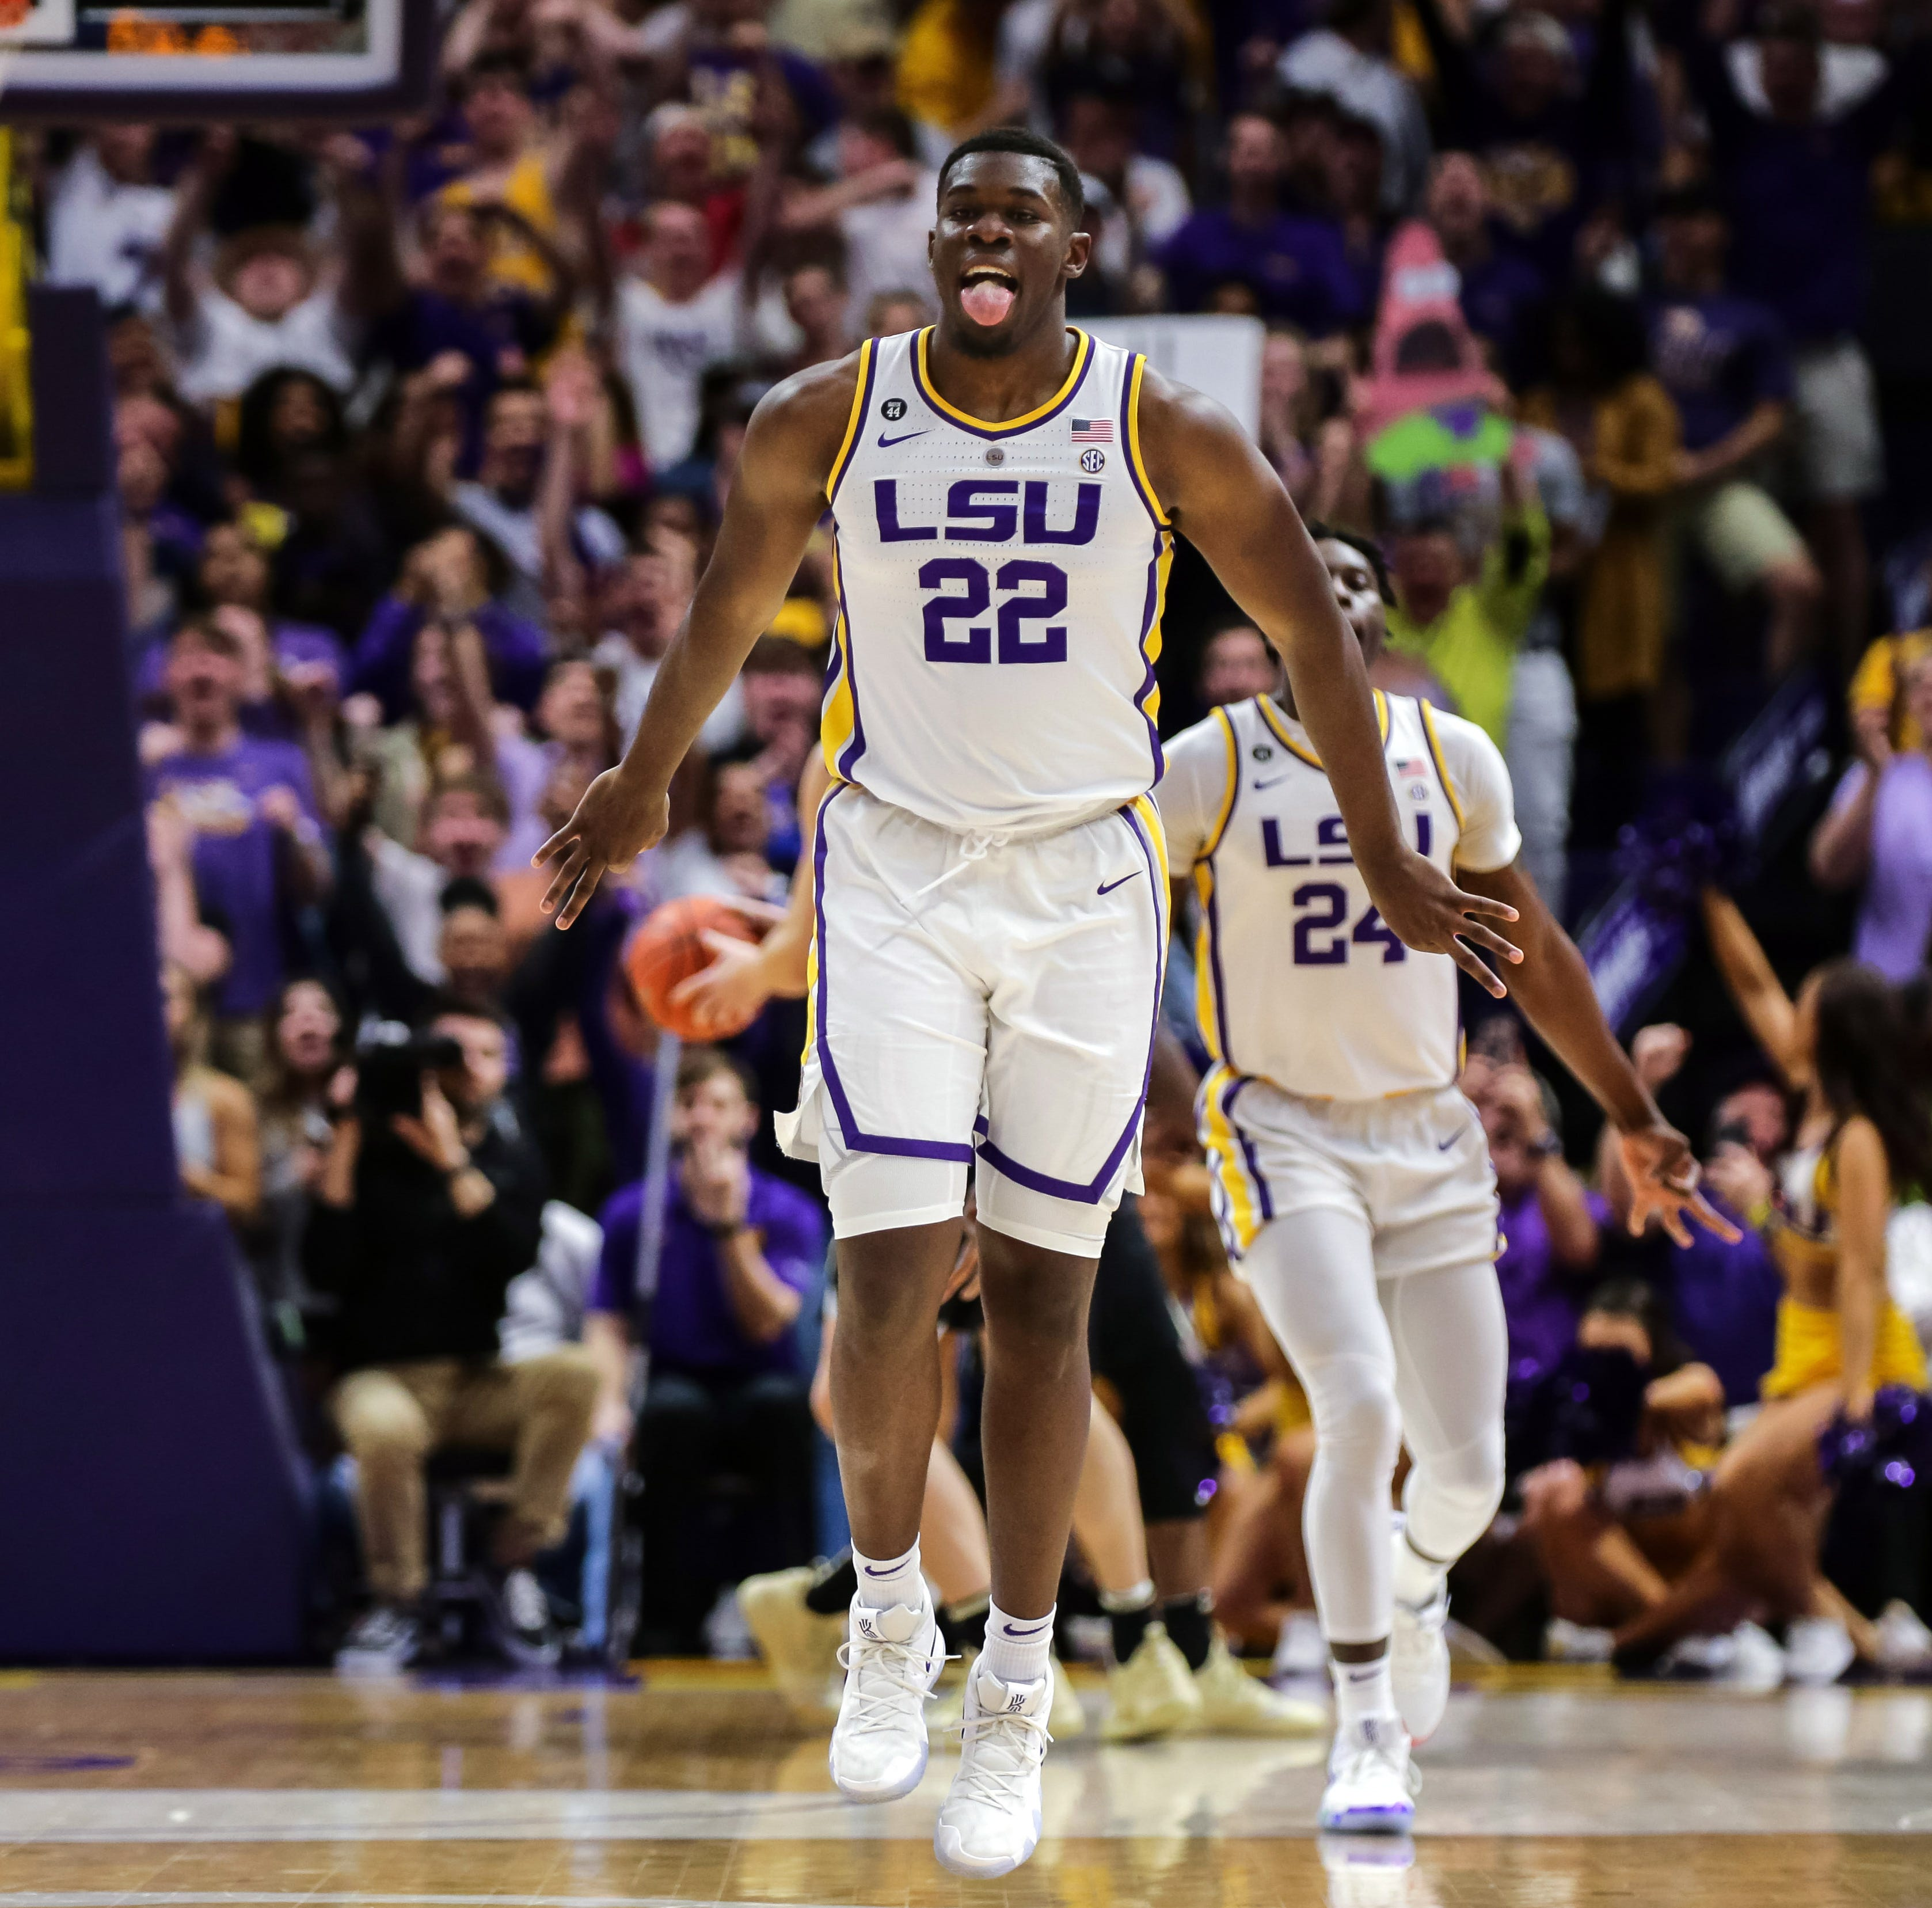 SEC Tournament 2019: How to watch LSU vs. Florida basketball on TV, live stream